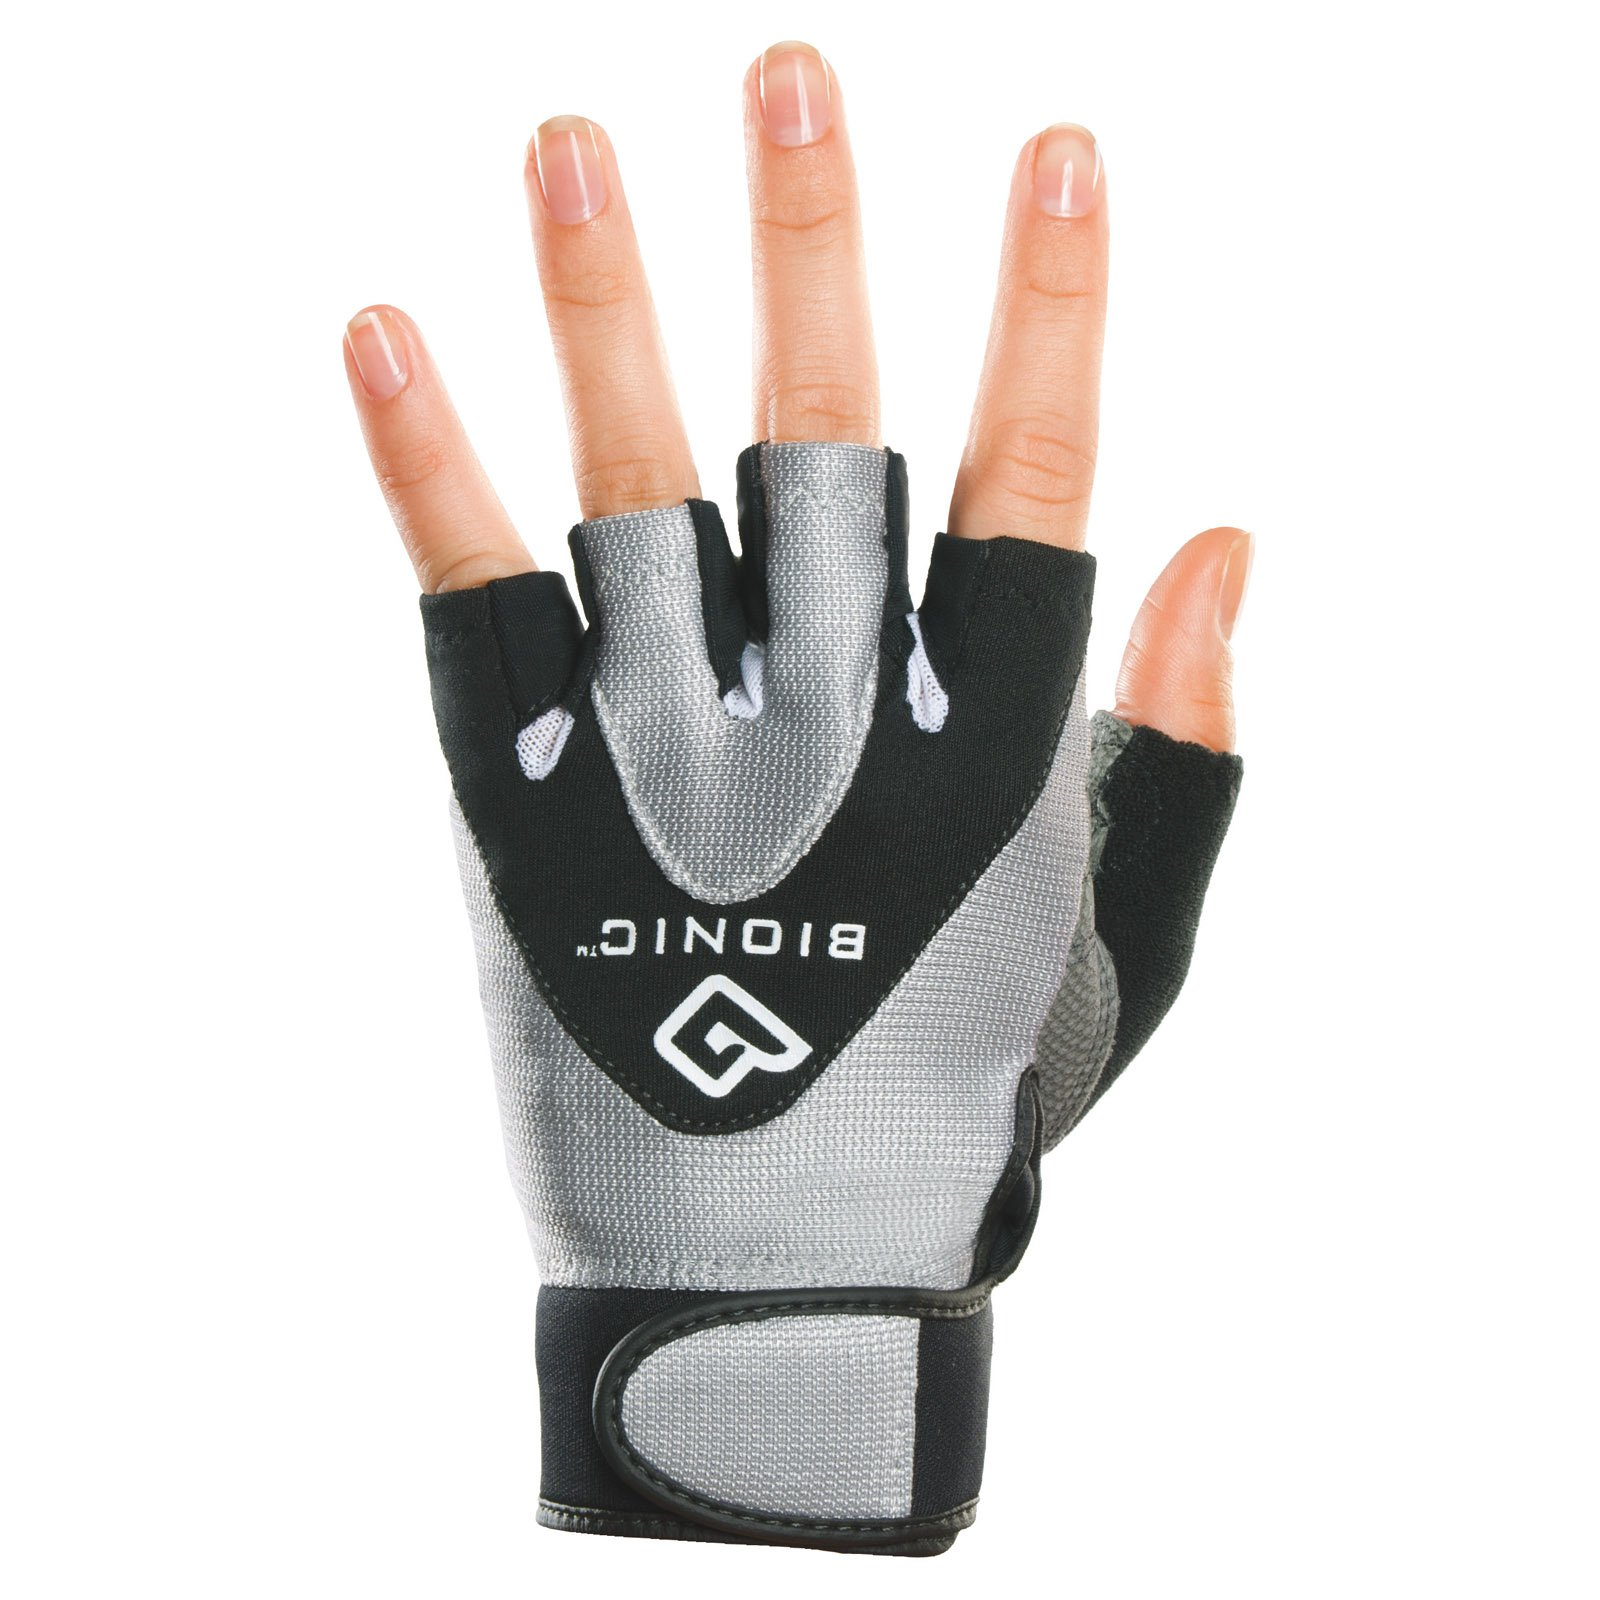 Bionic Womens StableGrip Half-Finger Fitness Gloves Large by Bionic